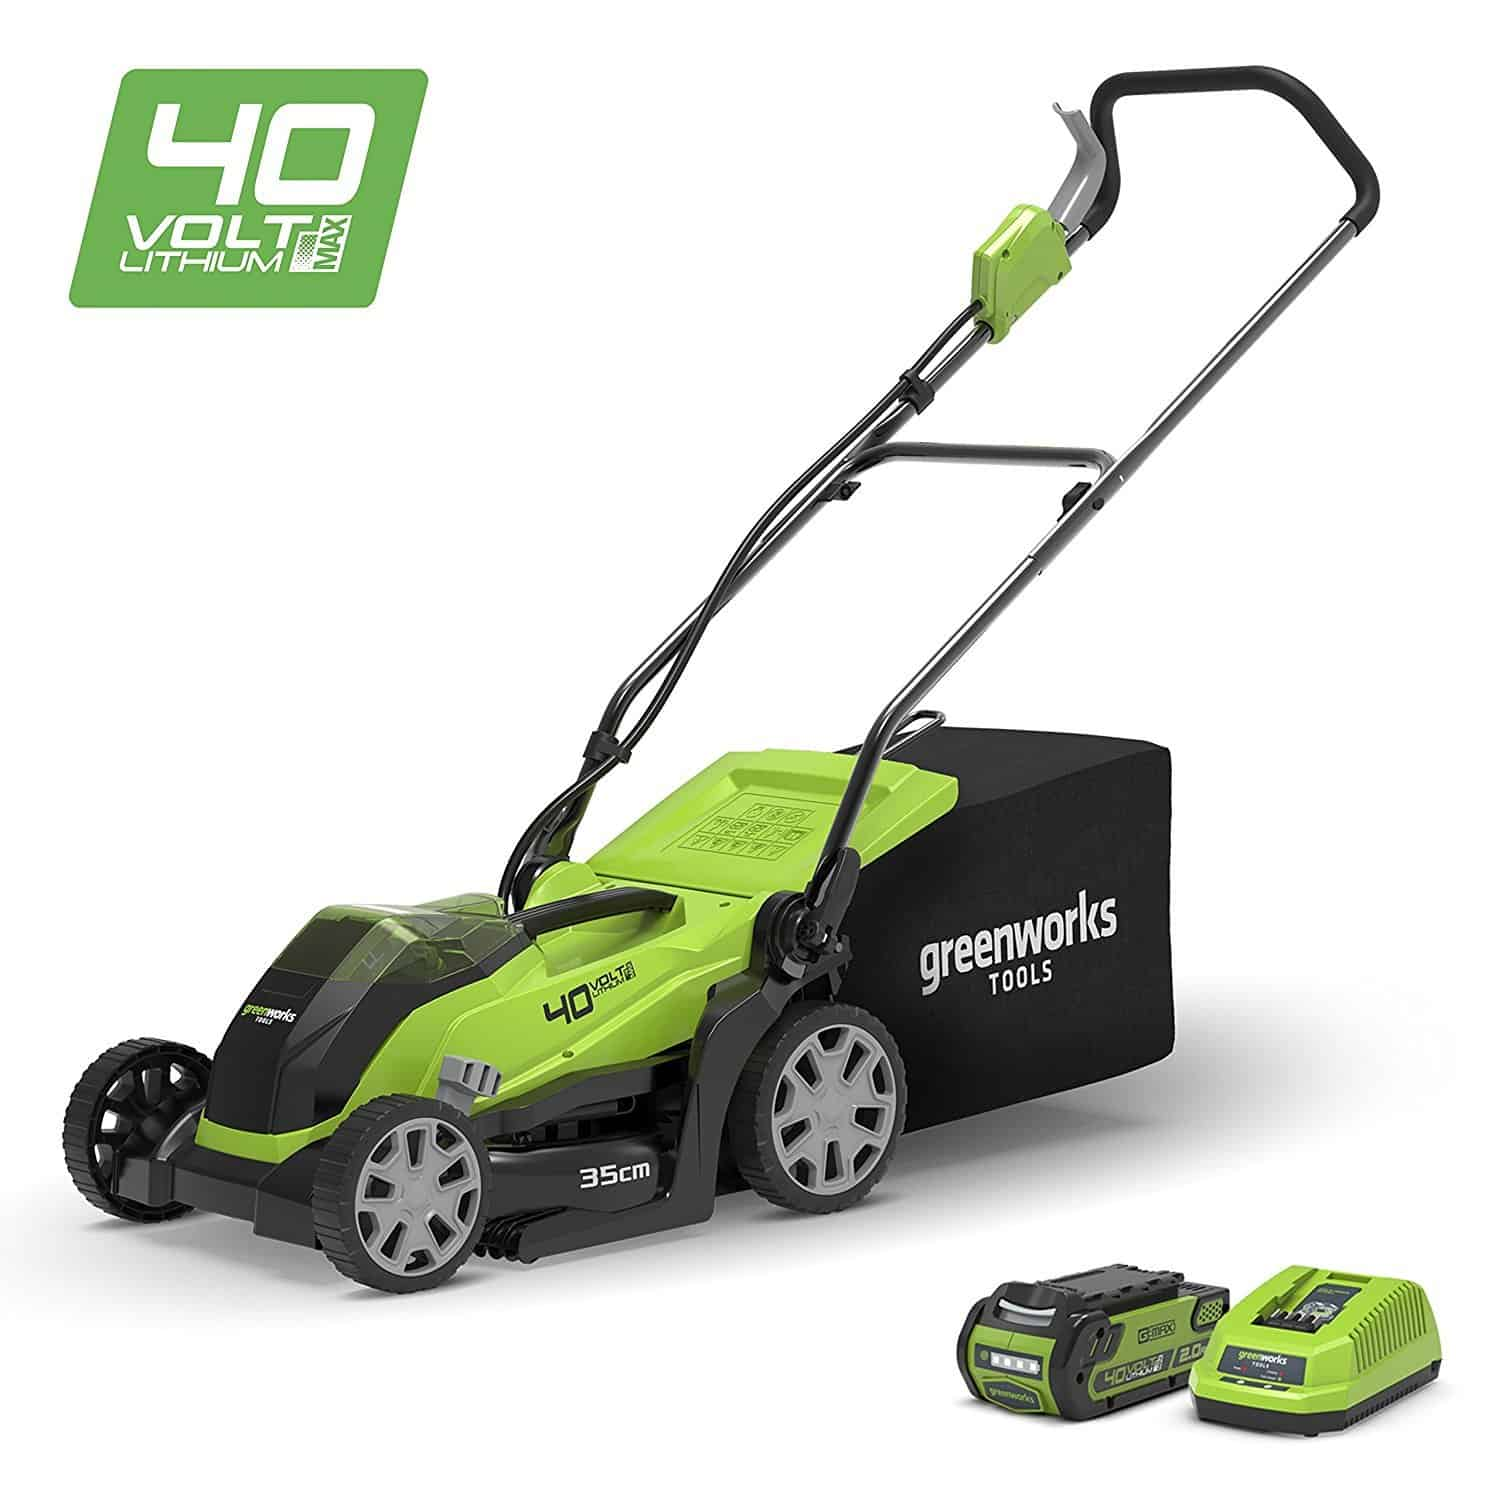 Greenworks 40v Cordless Lawn Mower Review 2019